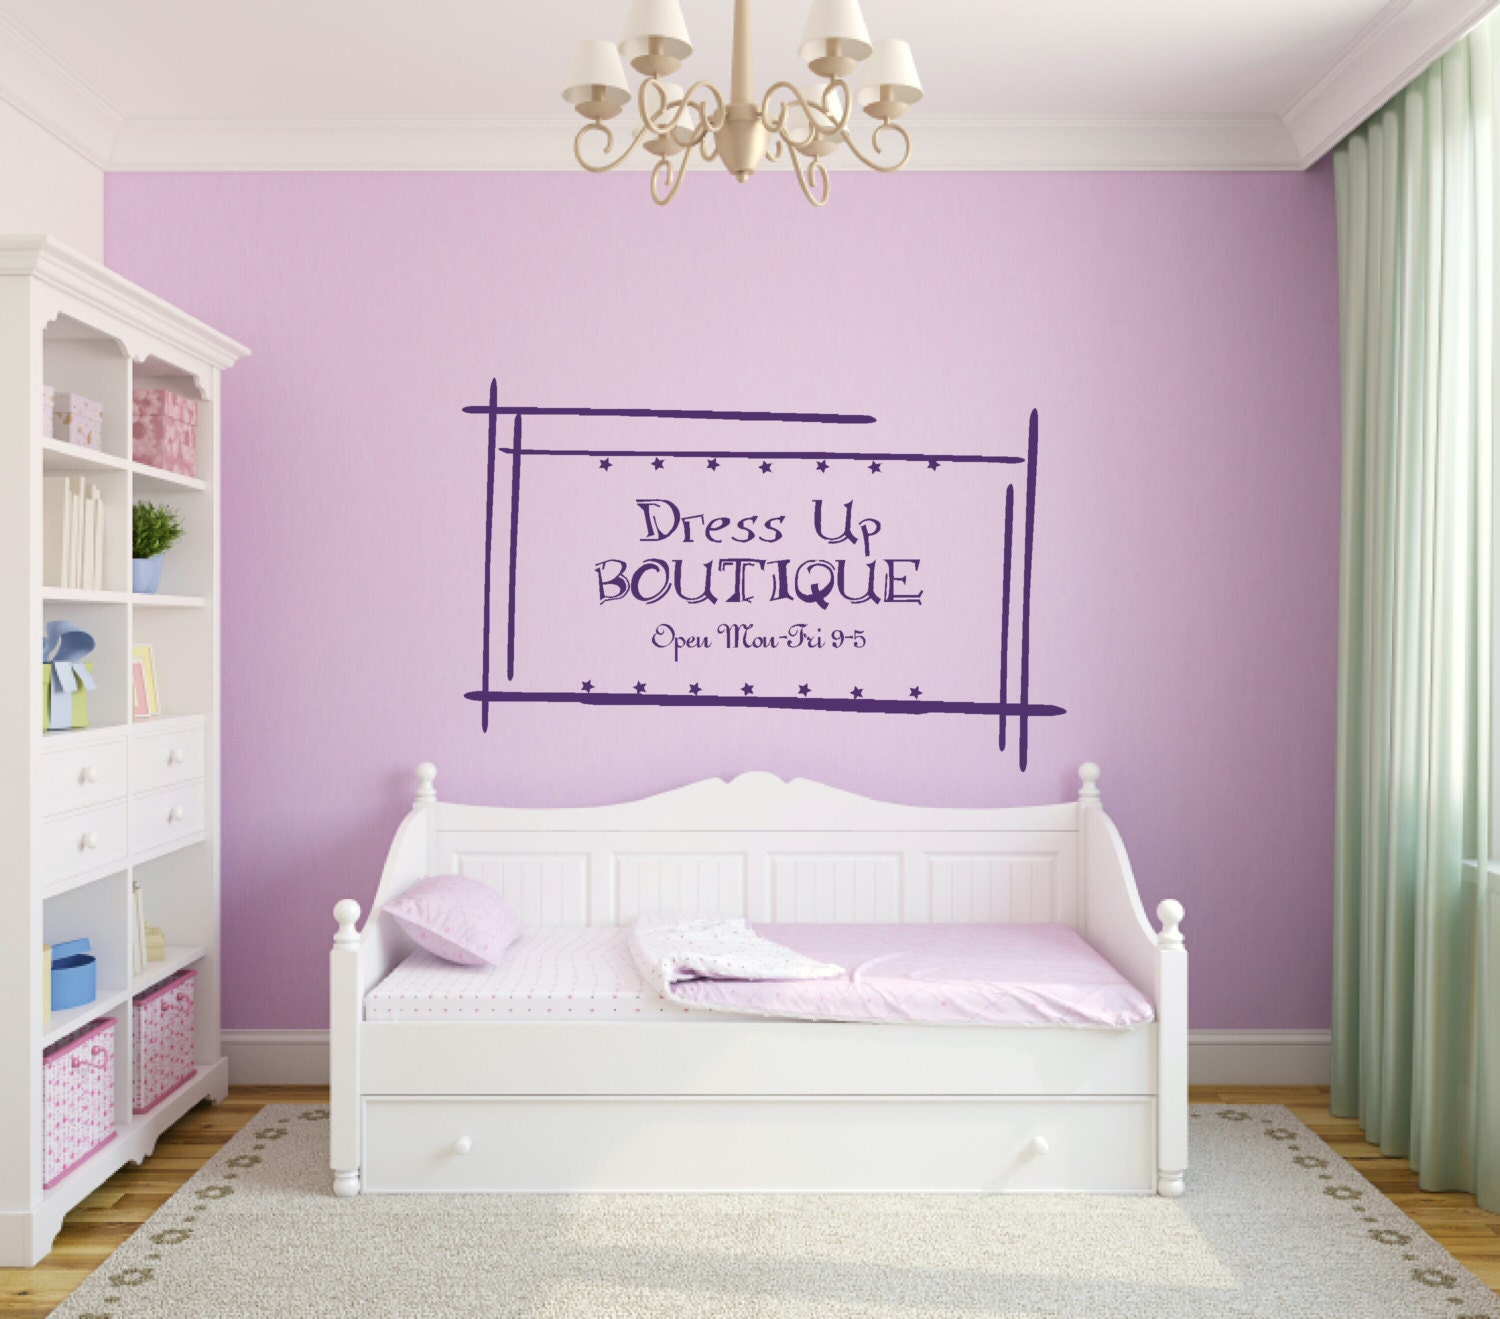 girl bedroom decal dress up boutique by pacificbeachboutique